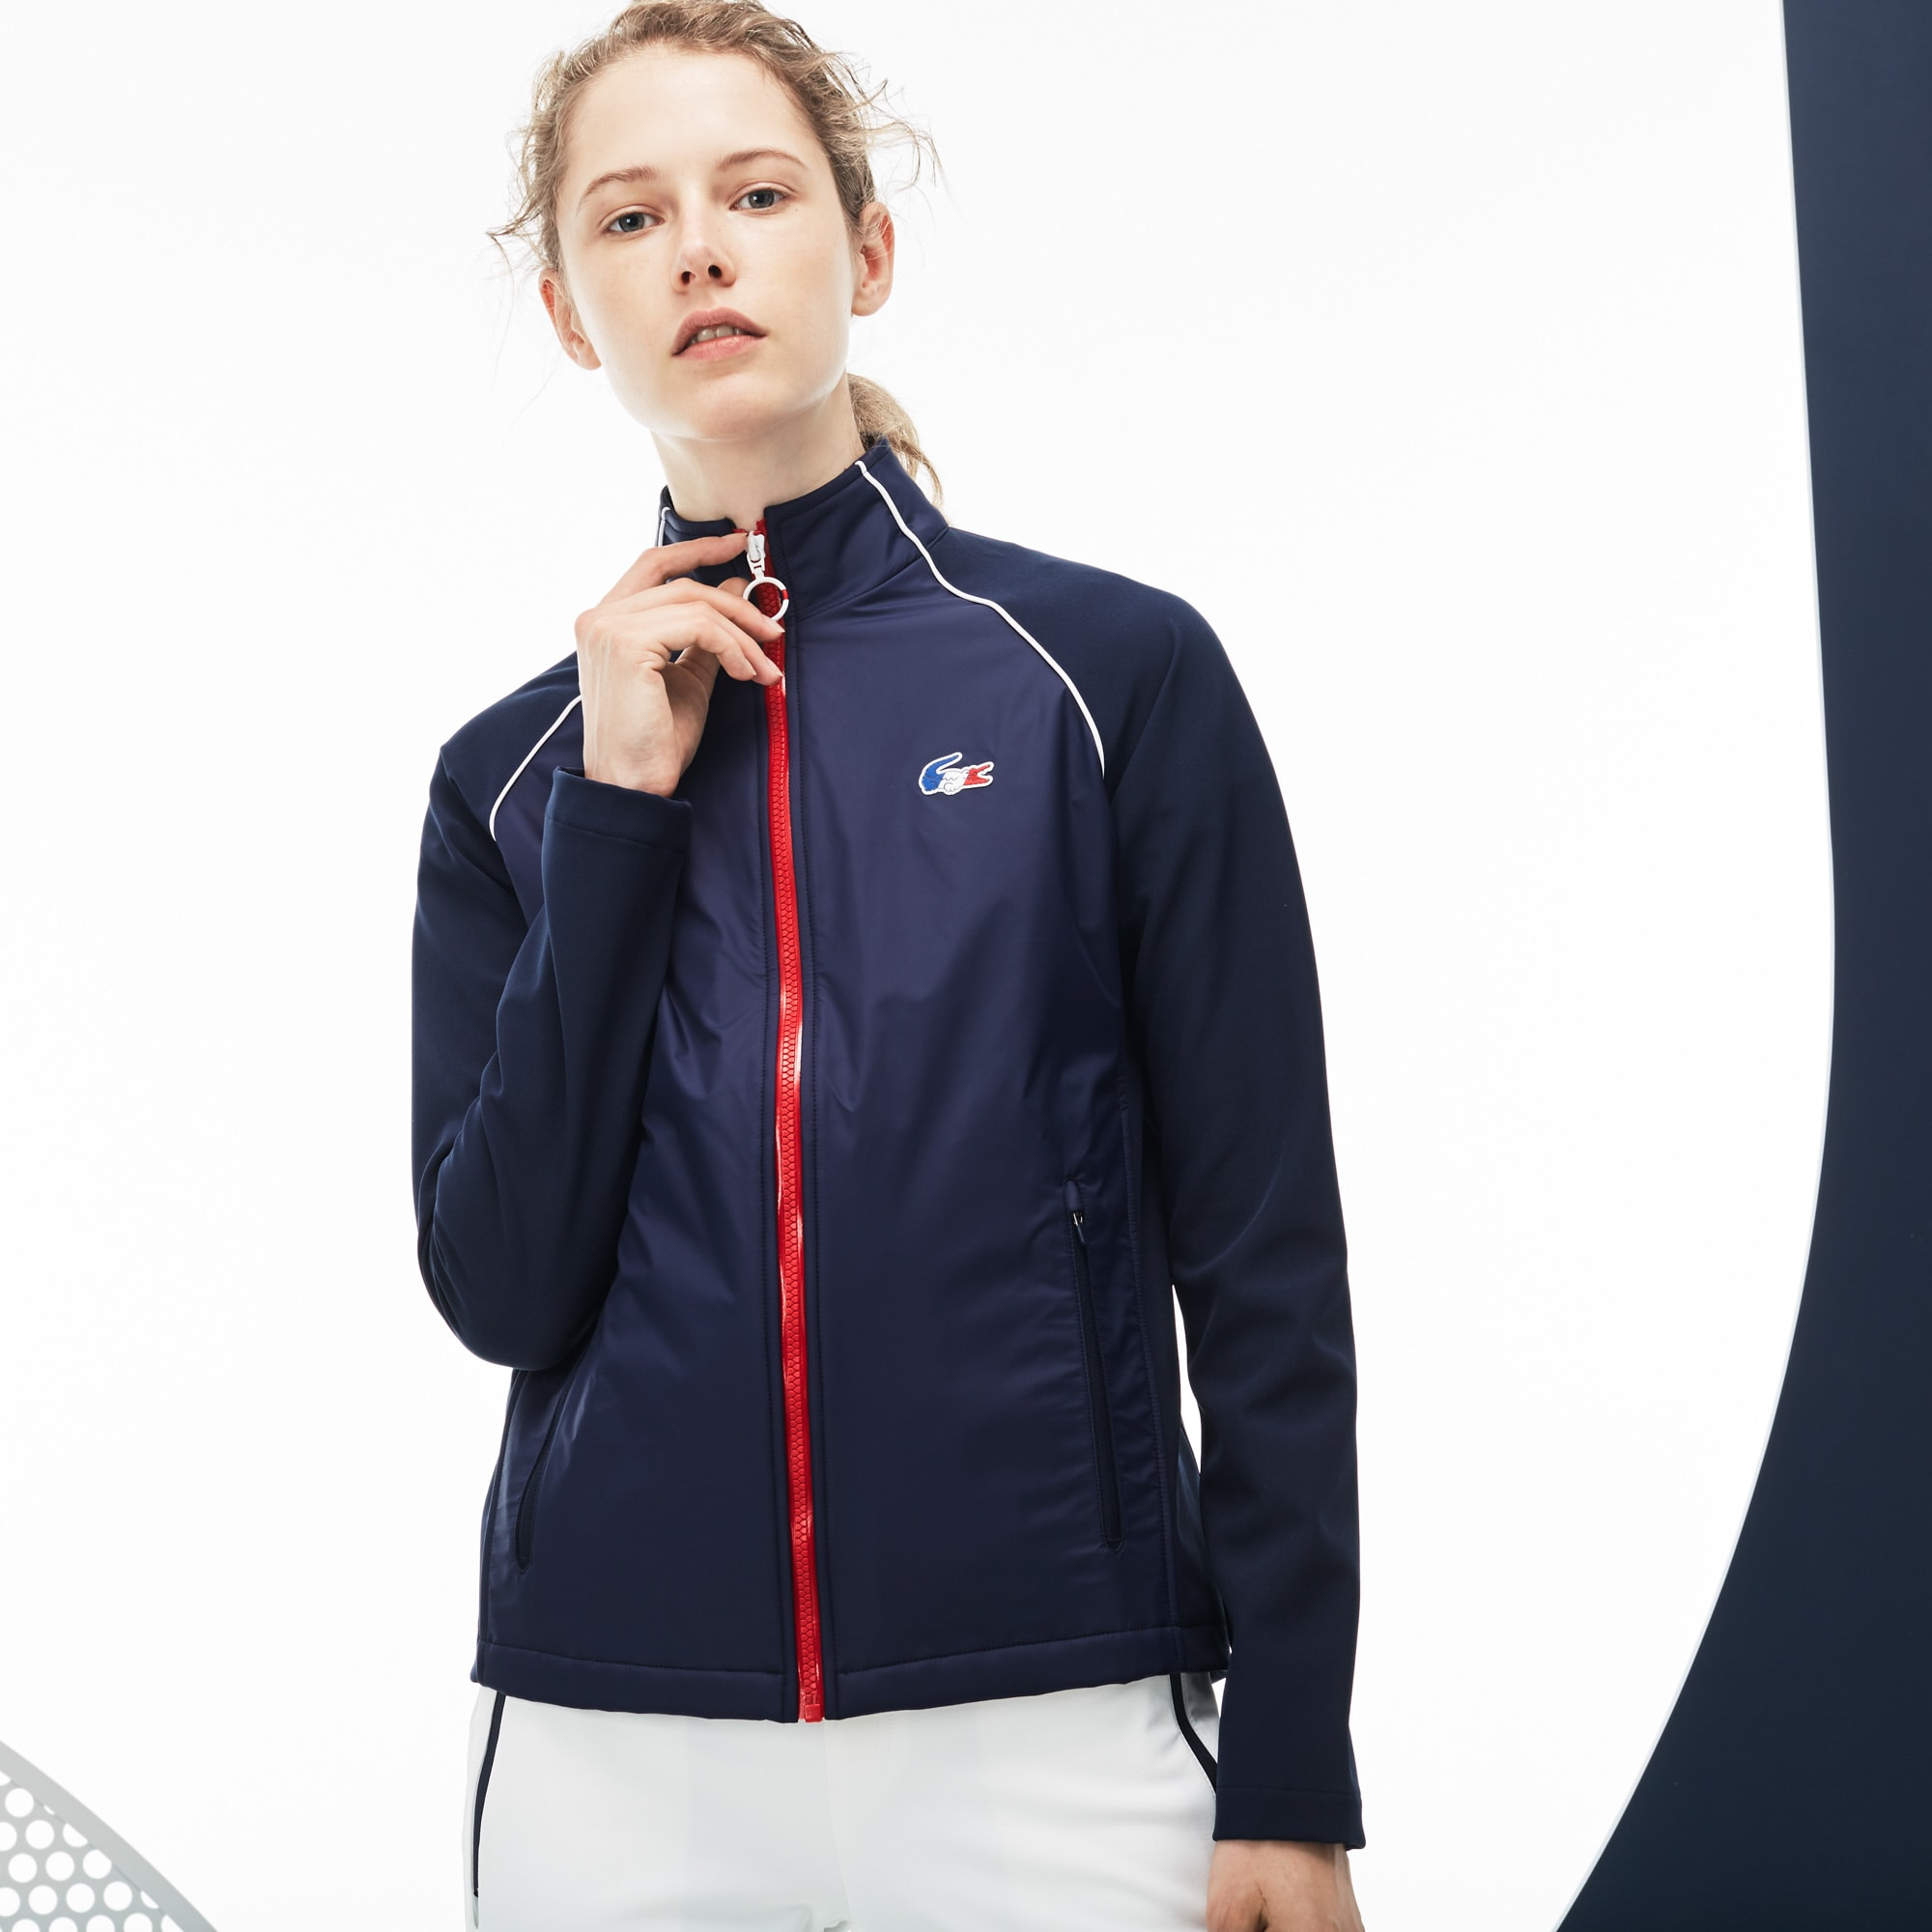 Women's  French Sporting Spirit Edition Technical Sweatshirt